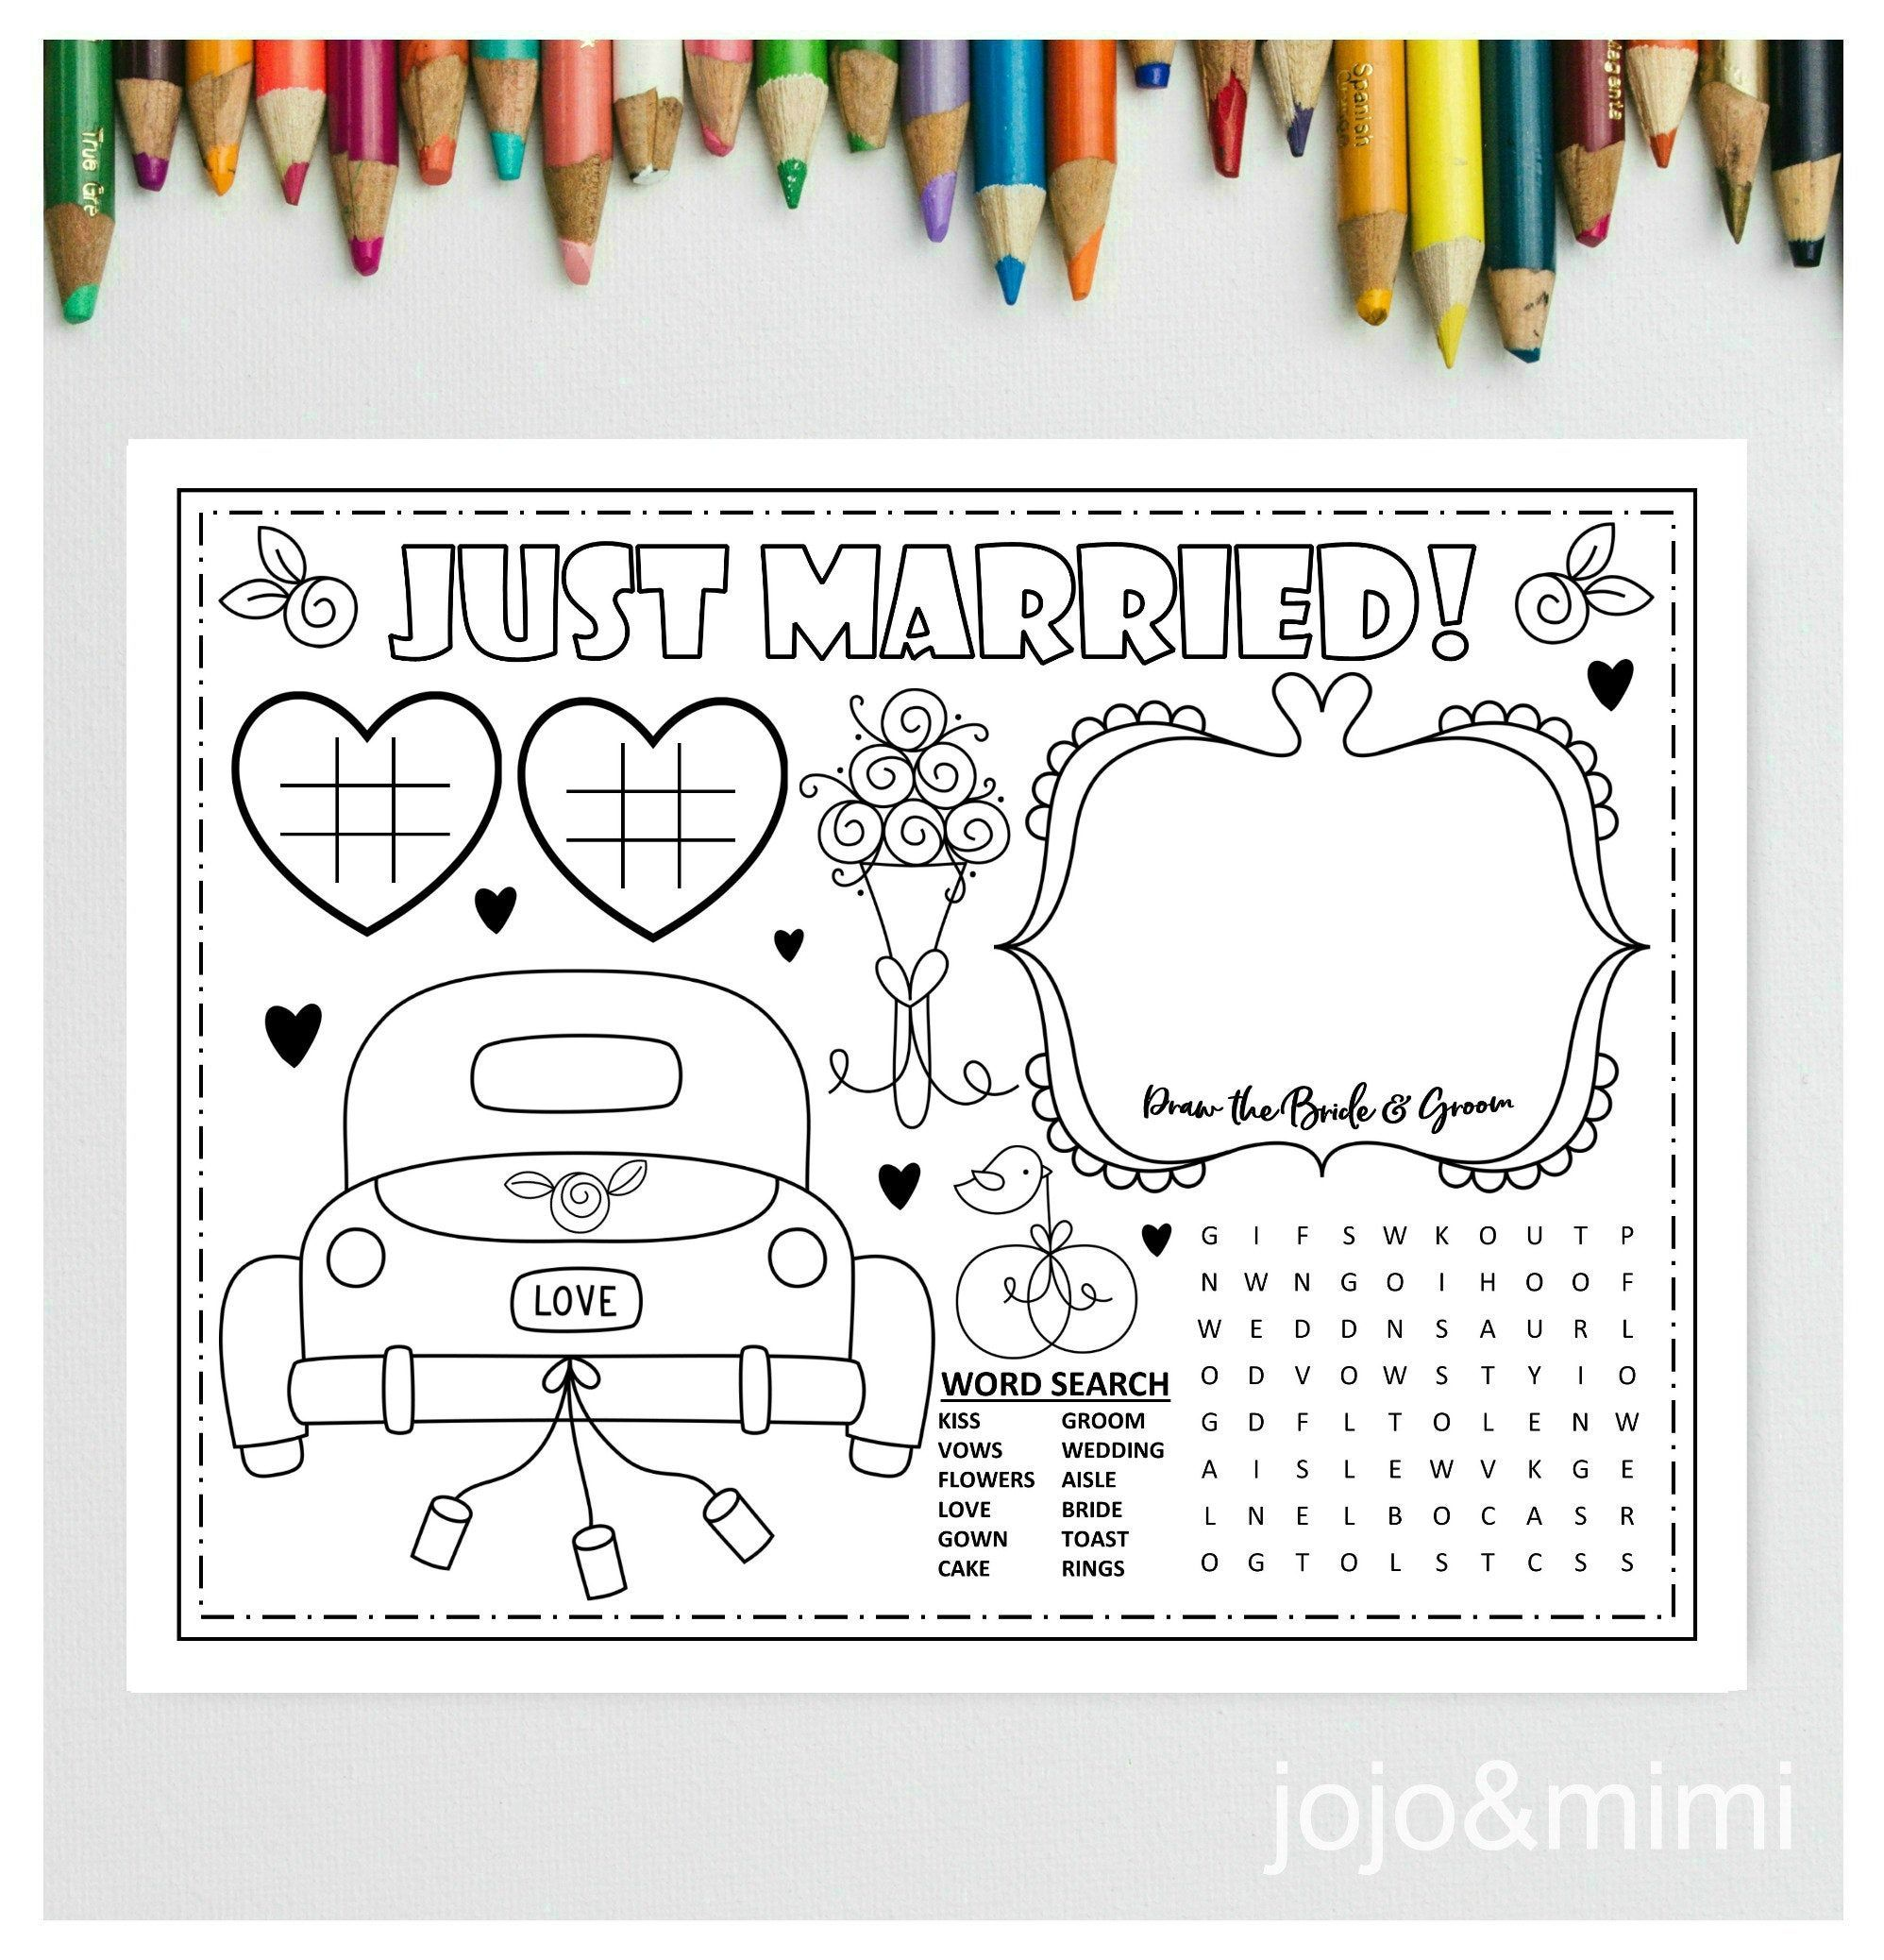 WEDDING Printable Placemat Wedding Day Activity Kids